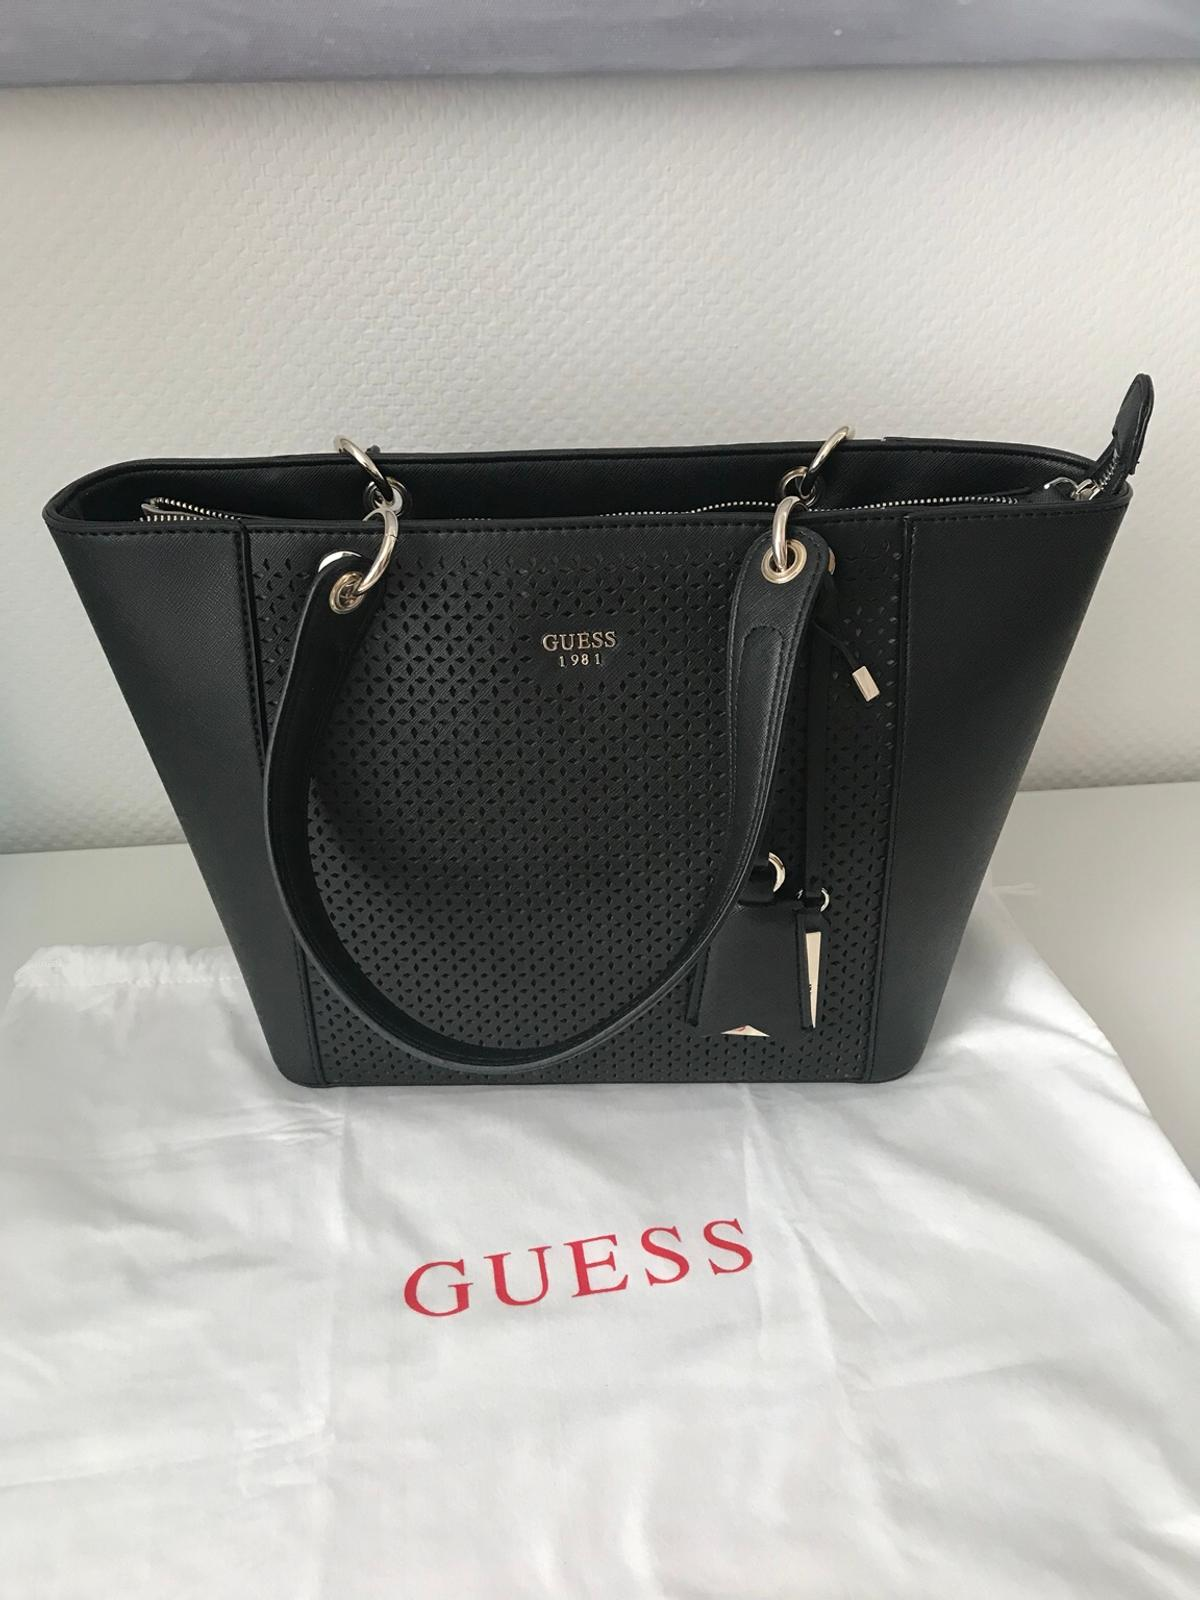 1653c12c1e695 Guess Tasche schwarz in 80802 München for €85.00 for sale - Shpock